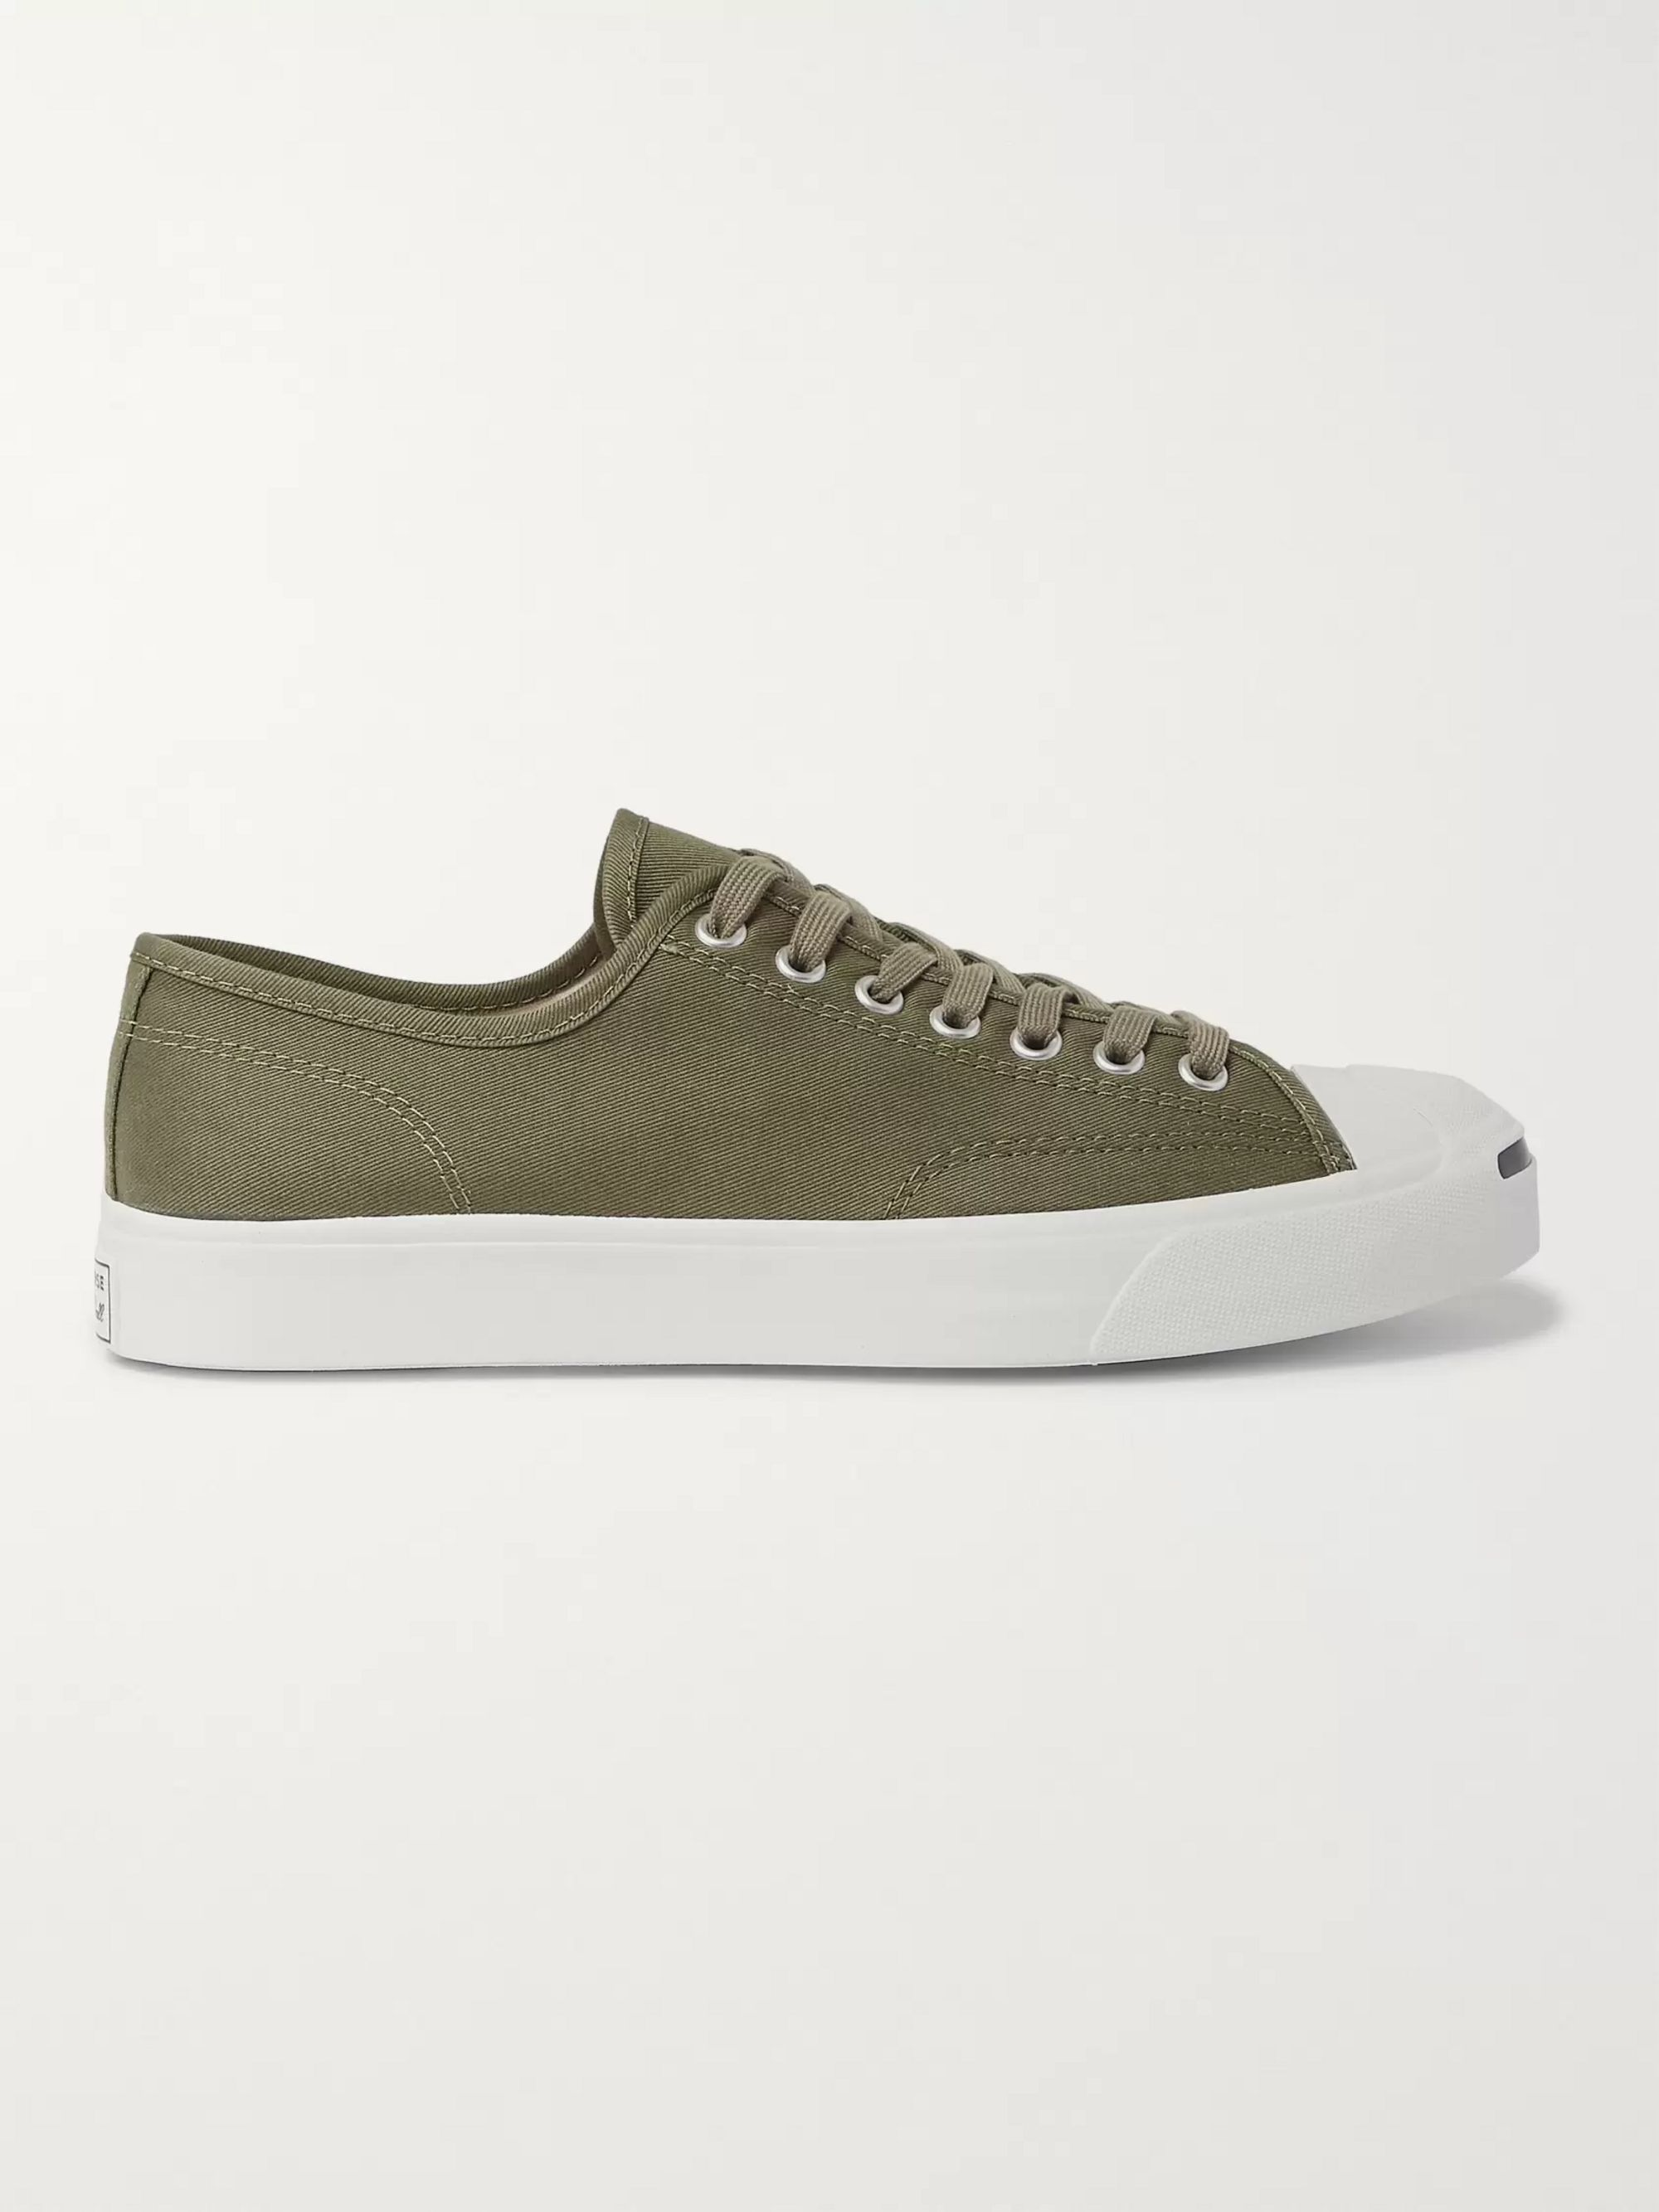 Converse Jack Purcell OX Rubber-Trimmed Canvas Sneakers